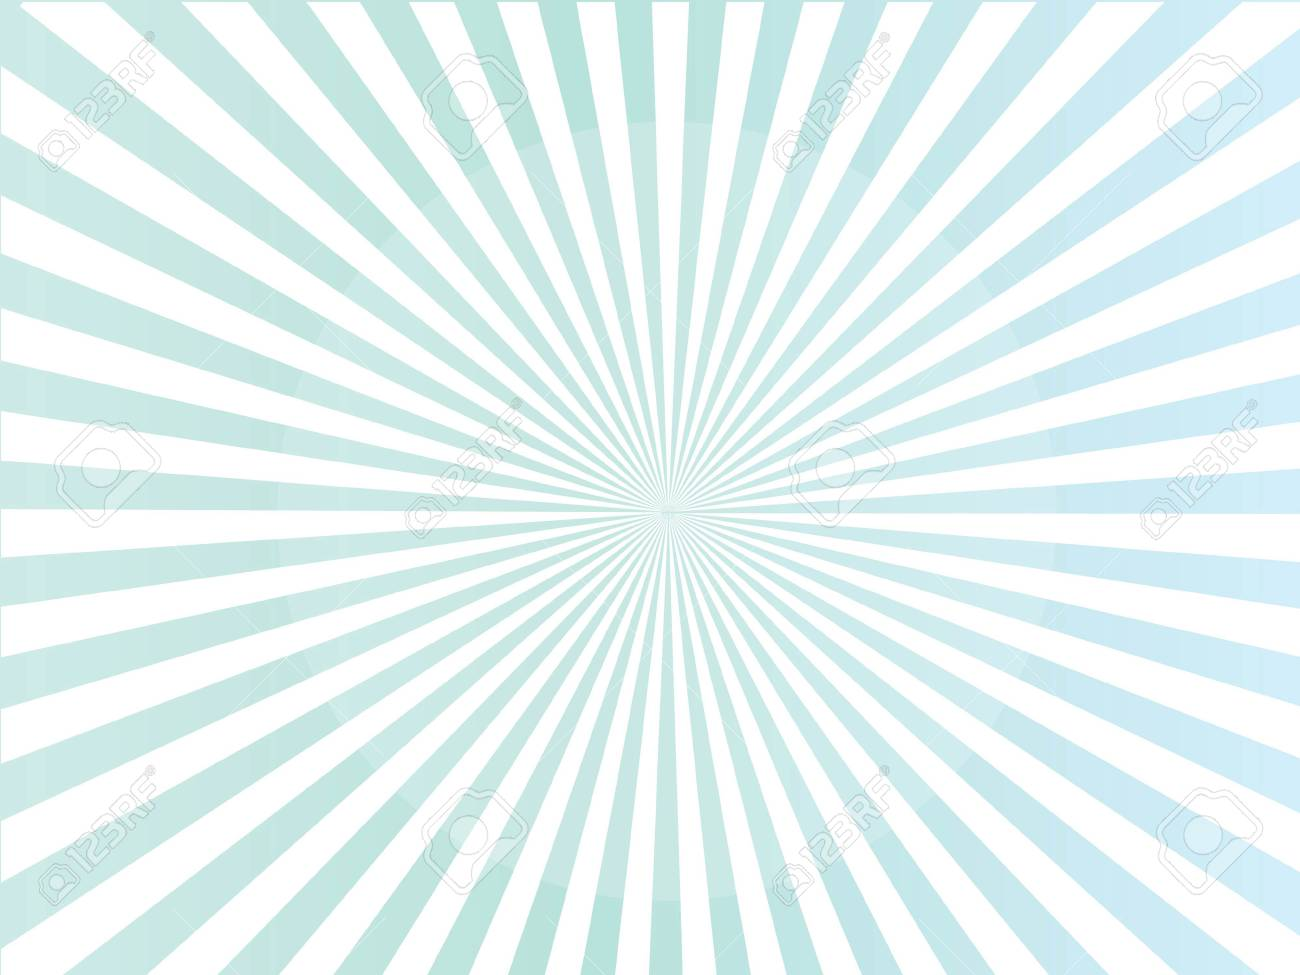 sun sunburst pattern sunburst background sunburst vector sunburst rh 123rf com vector transparent sunburst vector transparent sunburst